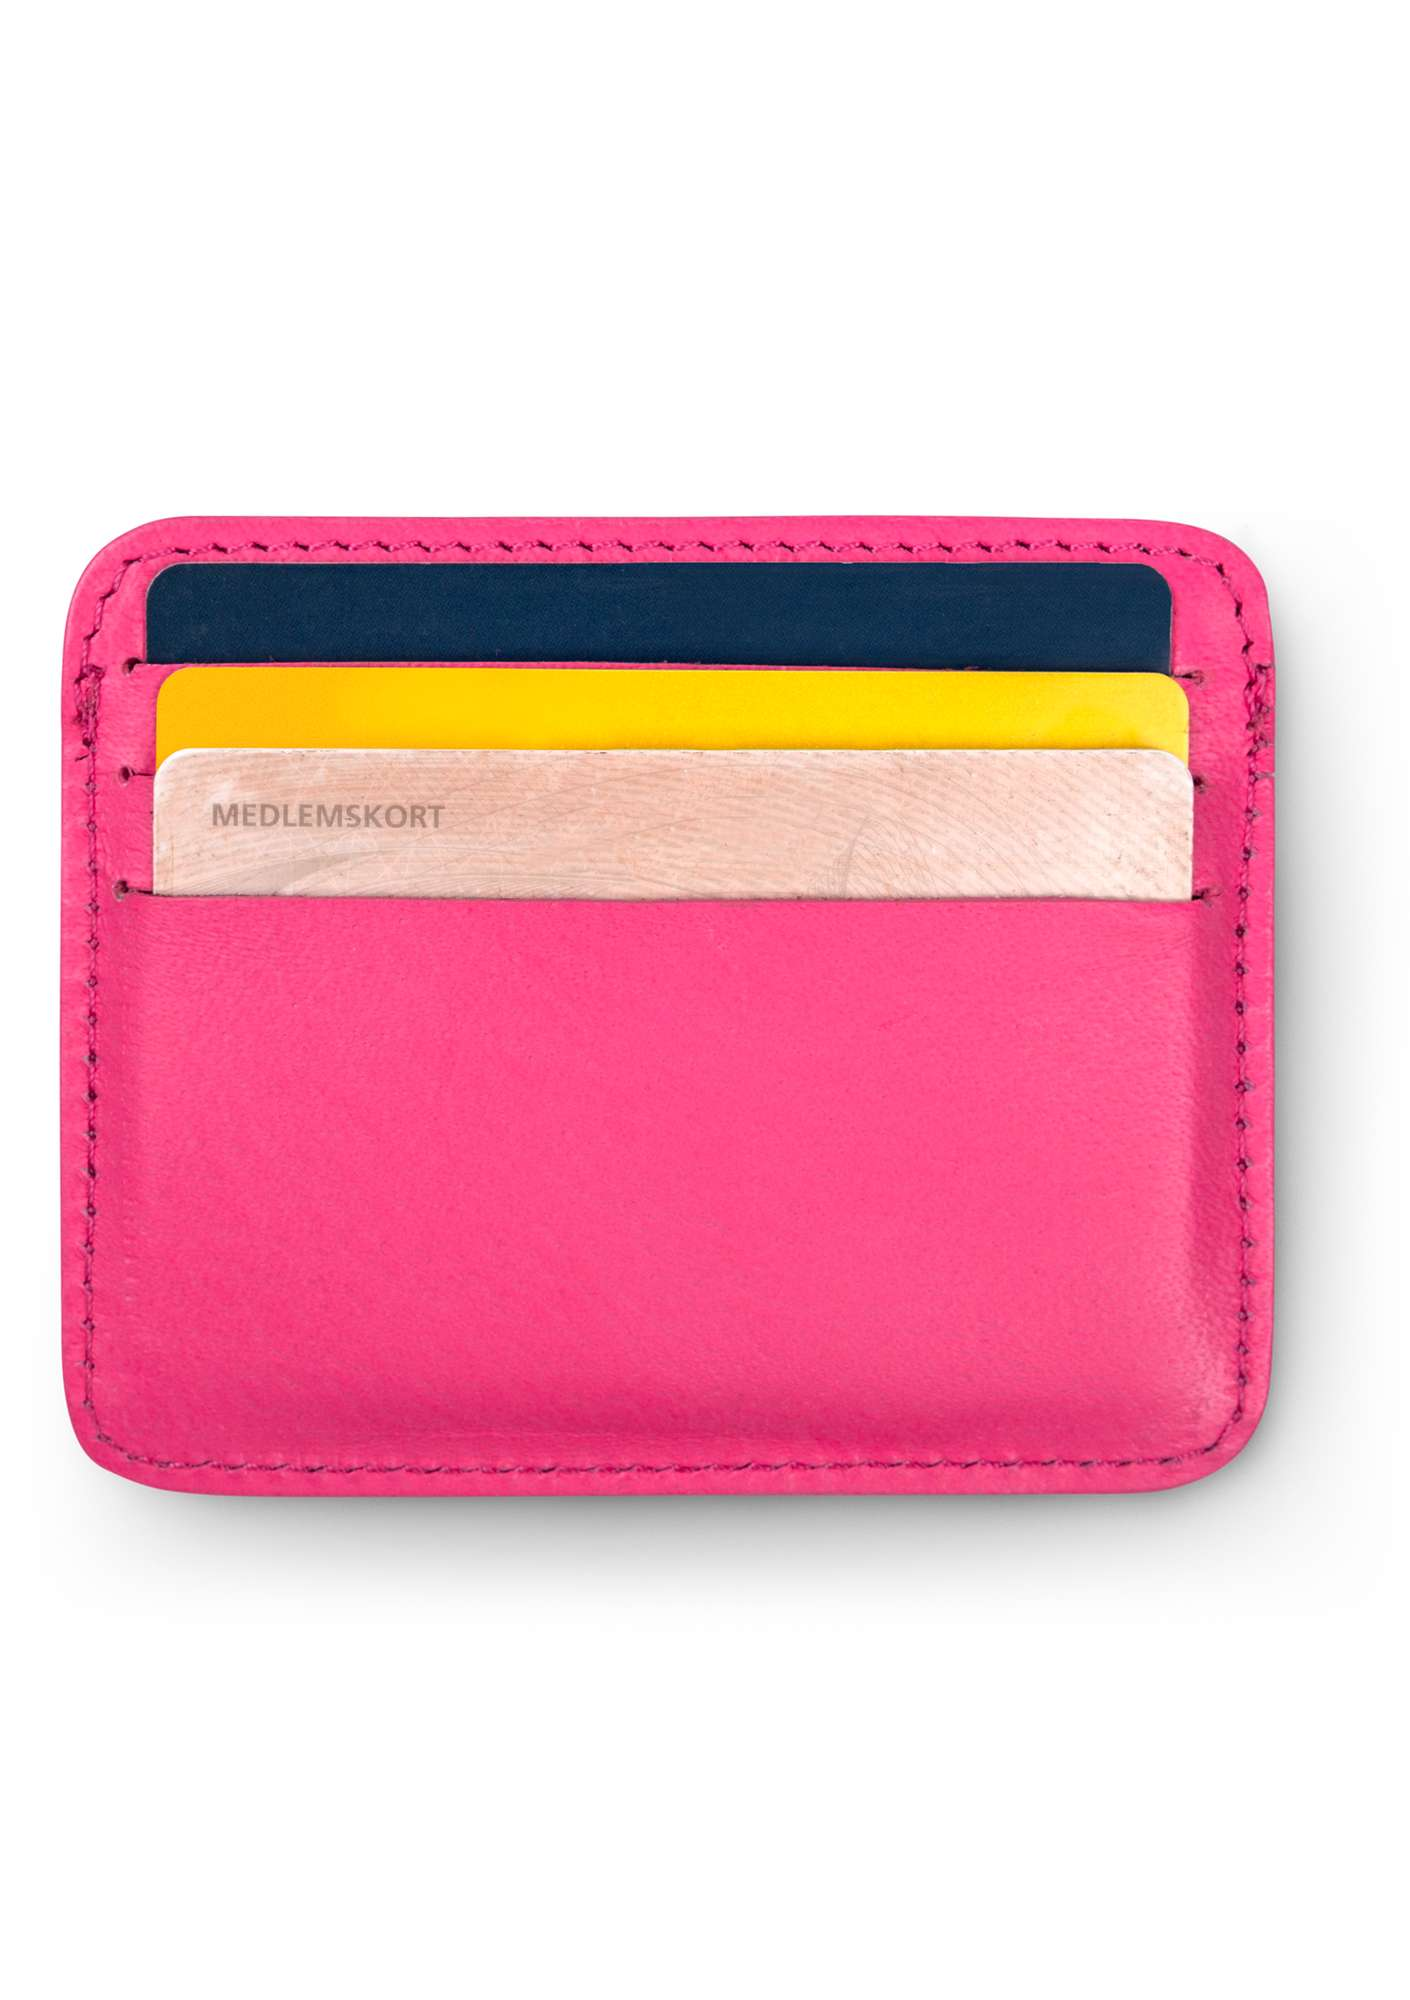 Leather card holder flox